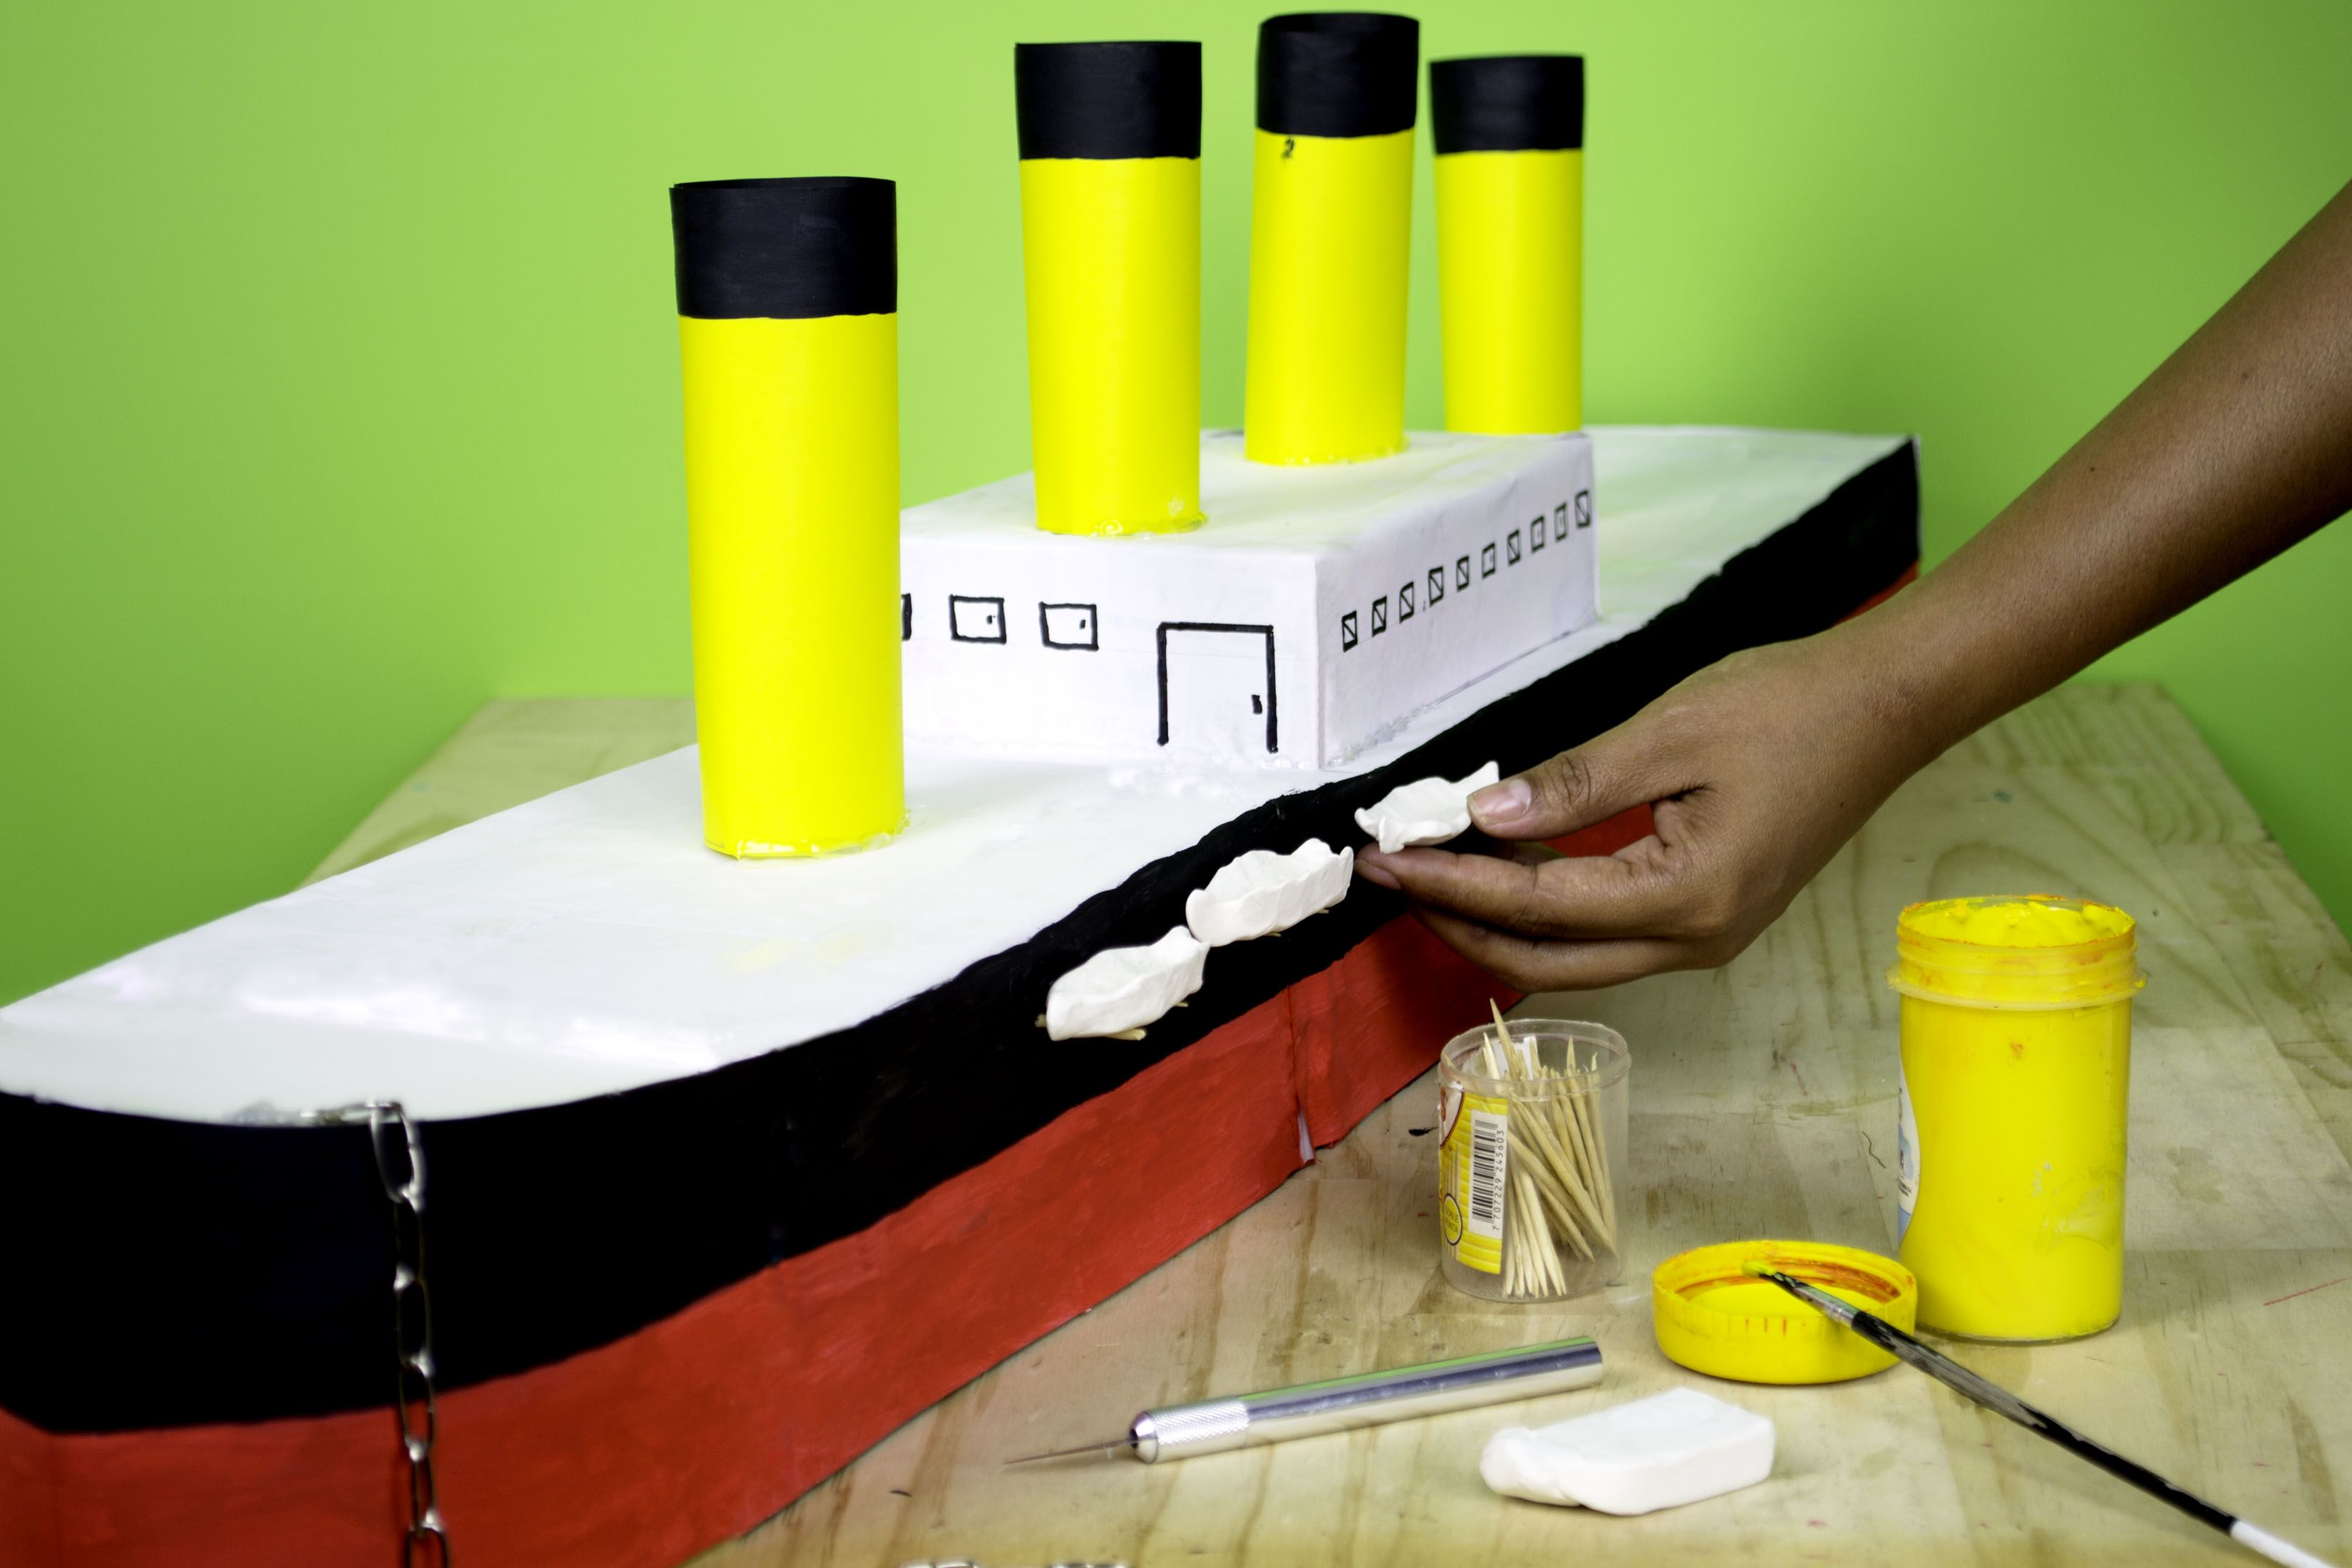 How to Make a Paper Model of the Titanic | Make paper, Home and ...